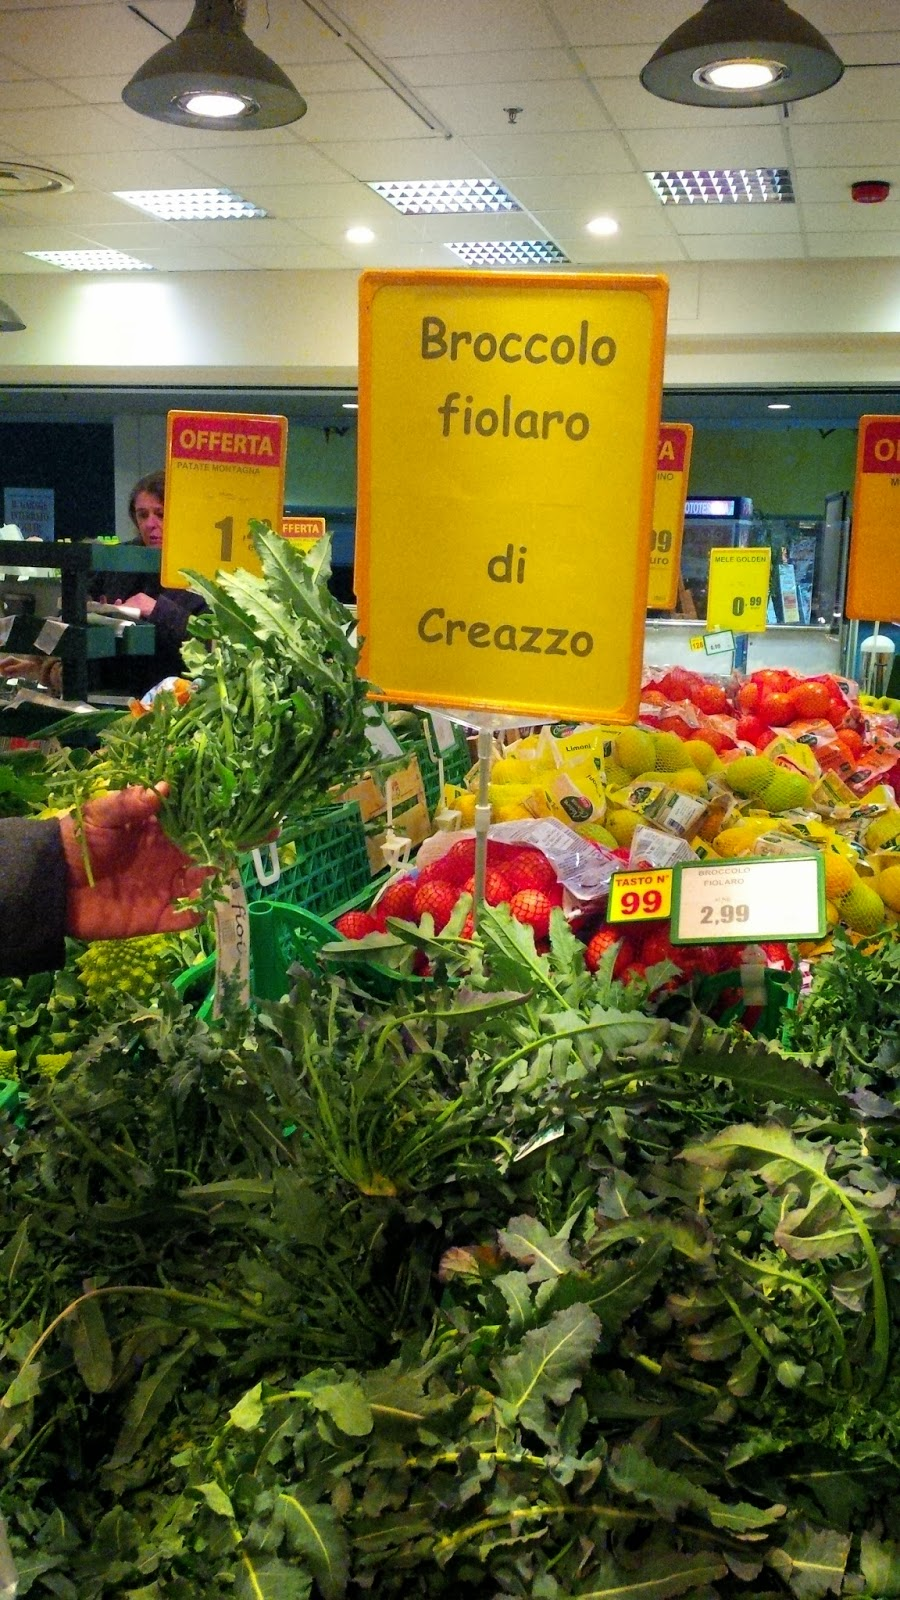 Buying a broccolo fiolaro in our local supermarket in Vicenza